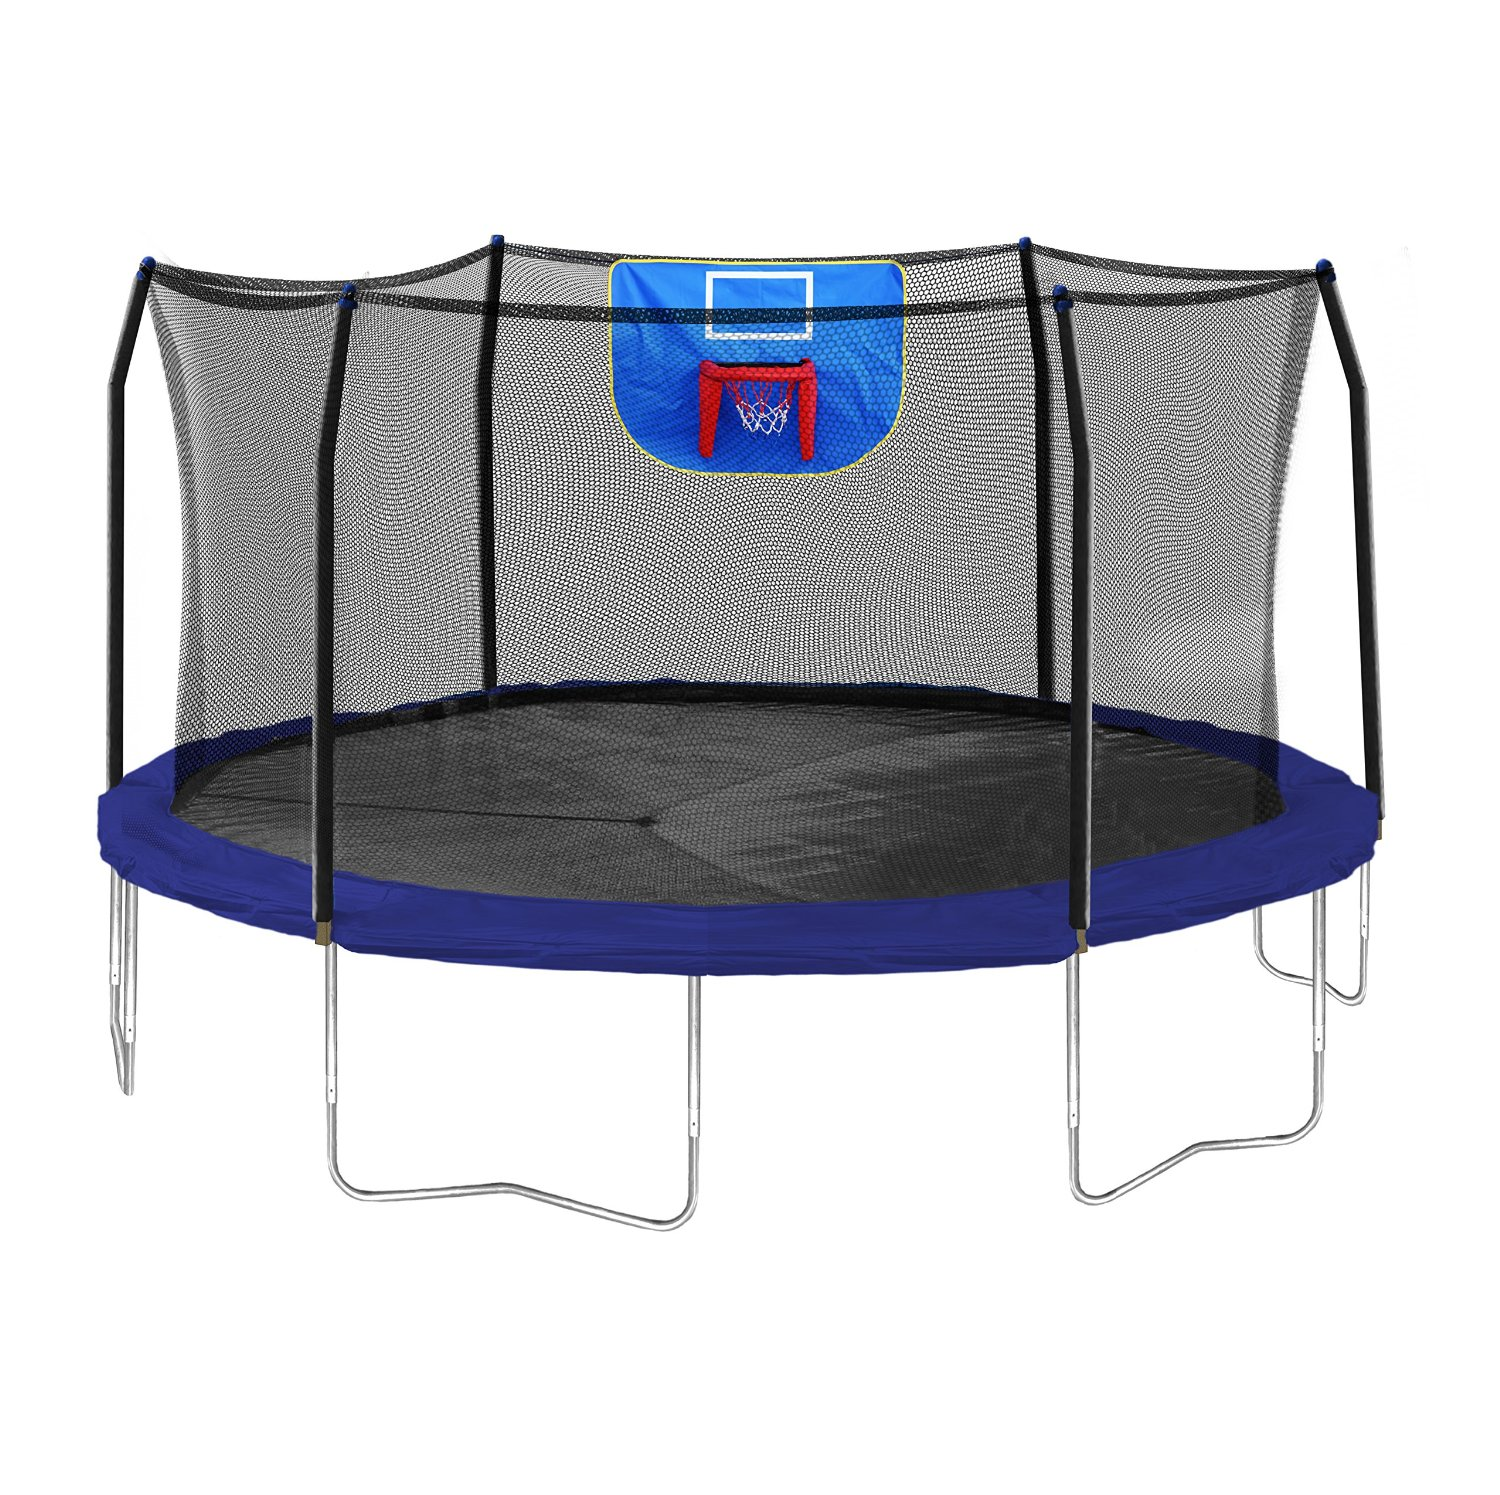 Kidwise Jumpfree 15 Ft Trampoline And Safety Enclosure: Amazon: Today Only-Skywalker Trampolines 15-Feet Jump N